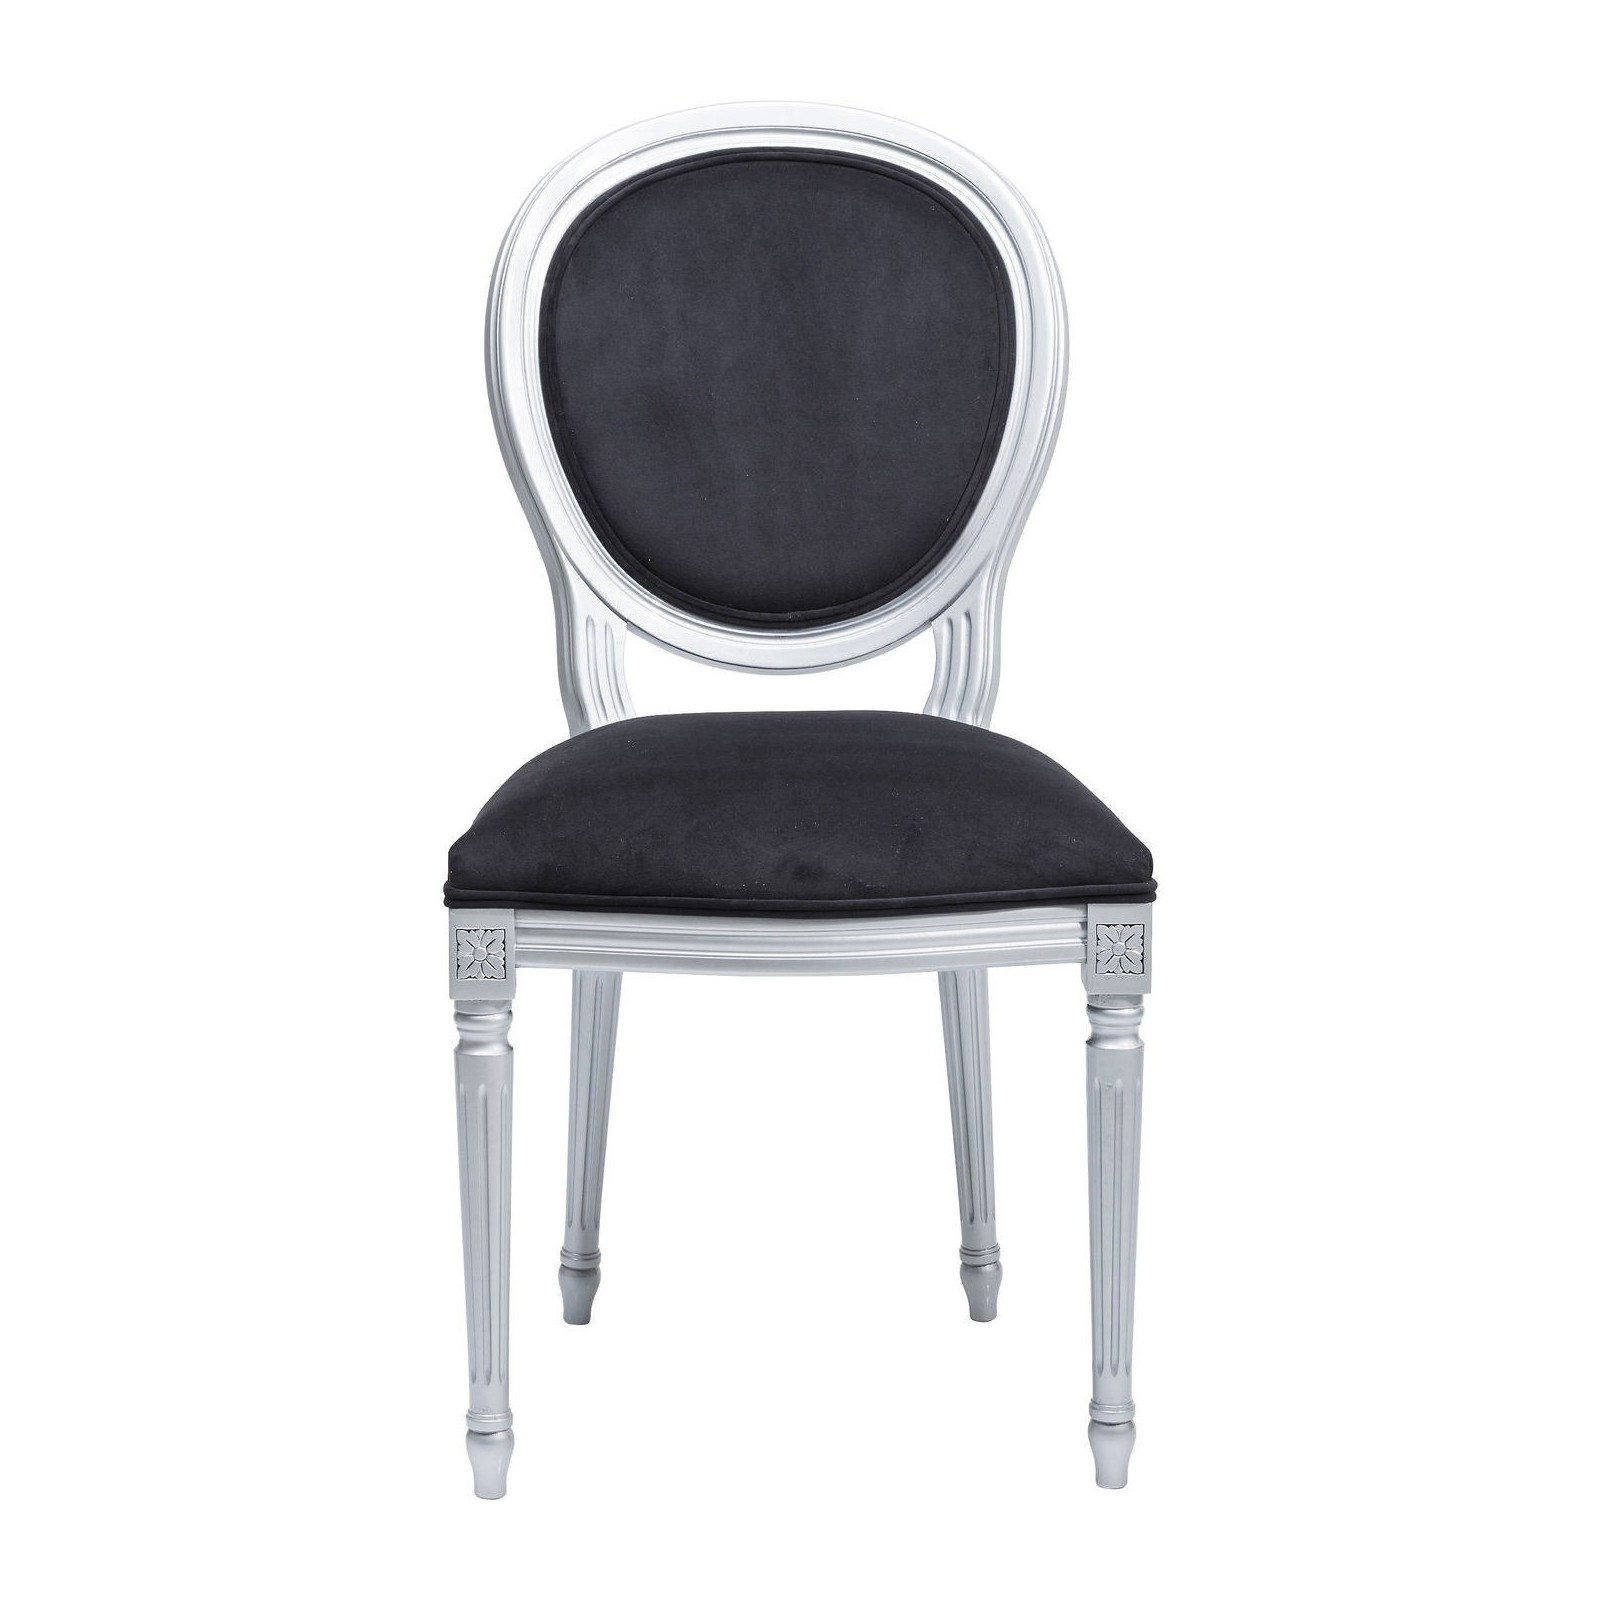 Chaise baroque noir argent rockstar by geiss kare for Chaise vibrante